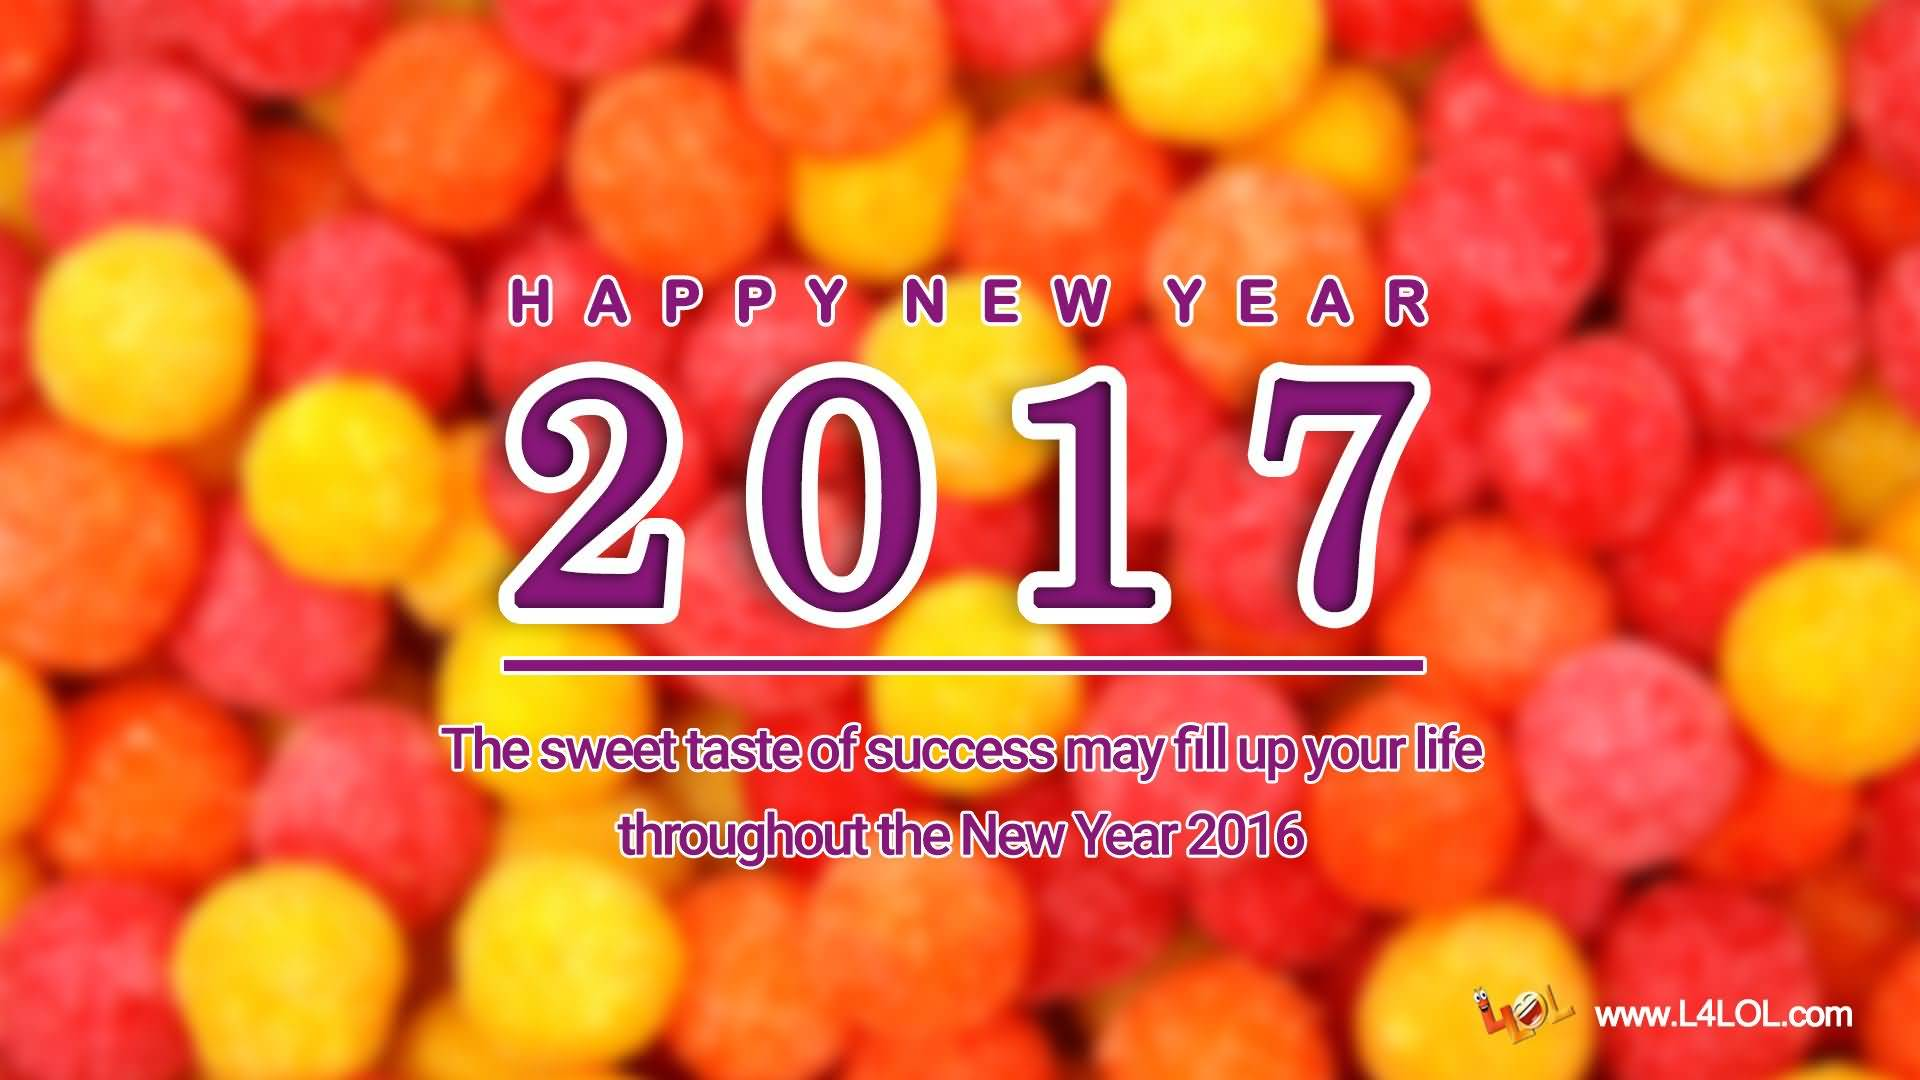 53 Cool Happy New Year Wallpapers Greetings u0026 Wishes  PICSMINE